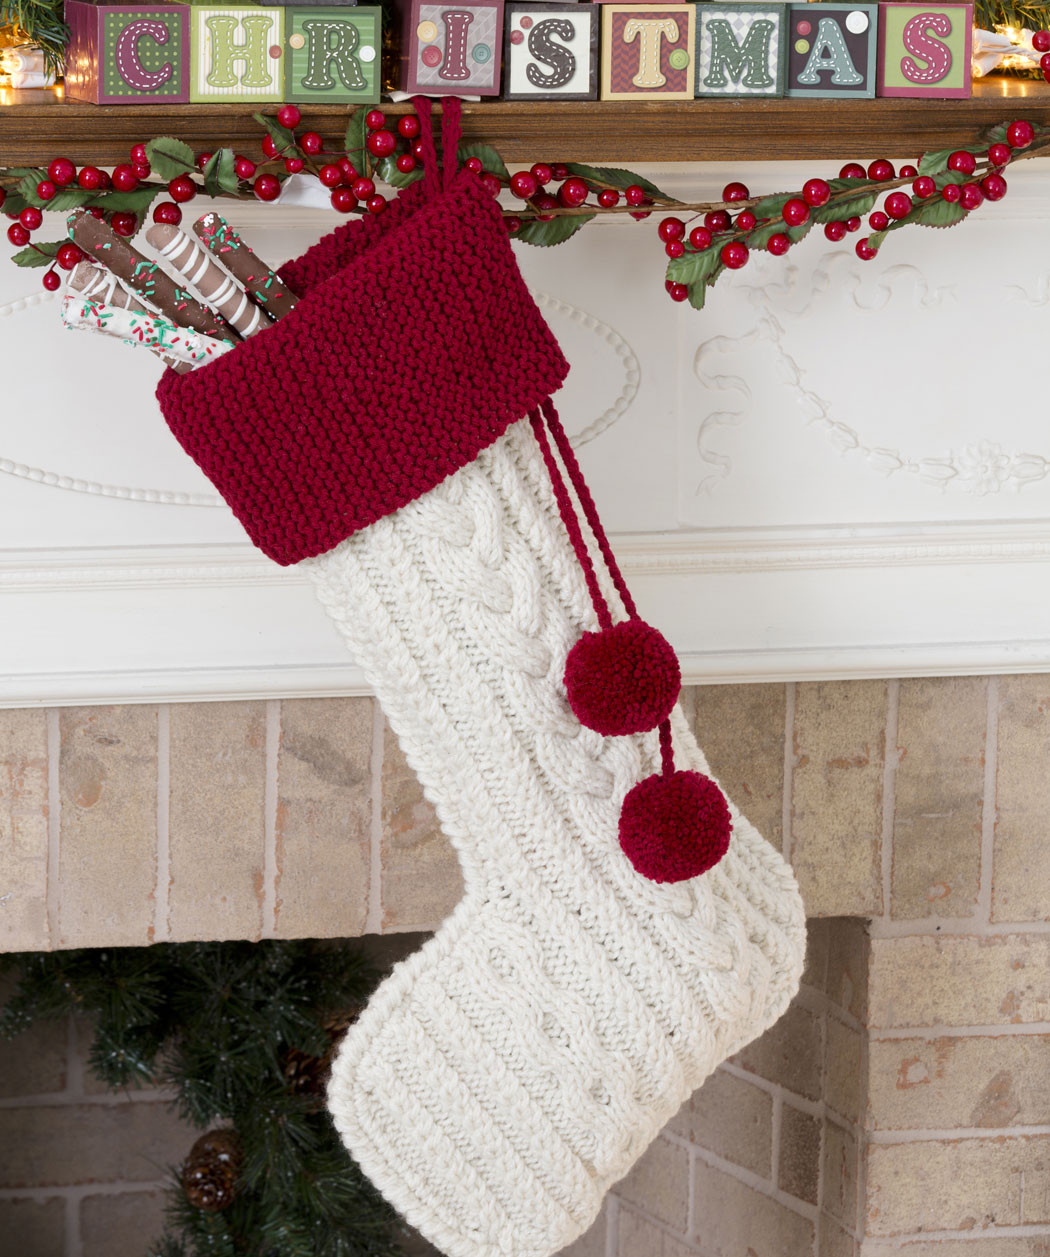 Christmas Knitting Patterns New Knitted Christmas Stocking Patterns Of Contemporary 44 Pics Christmas Knitting Patterns